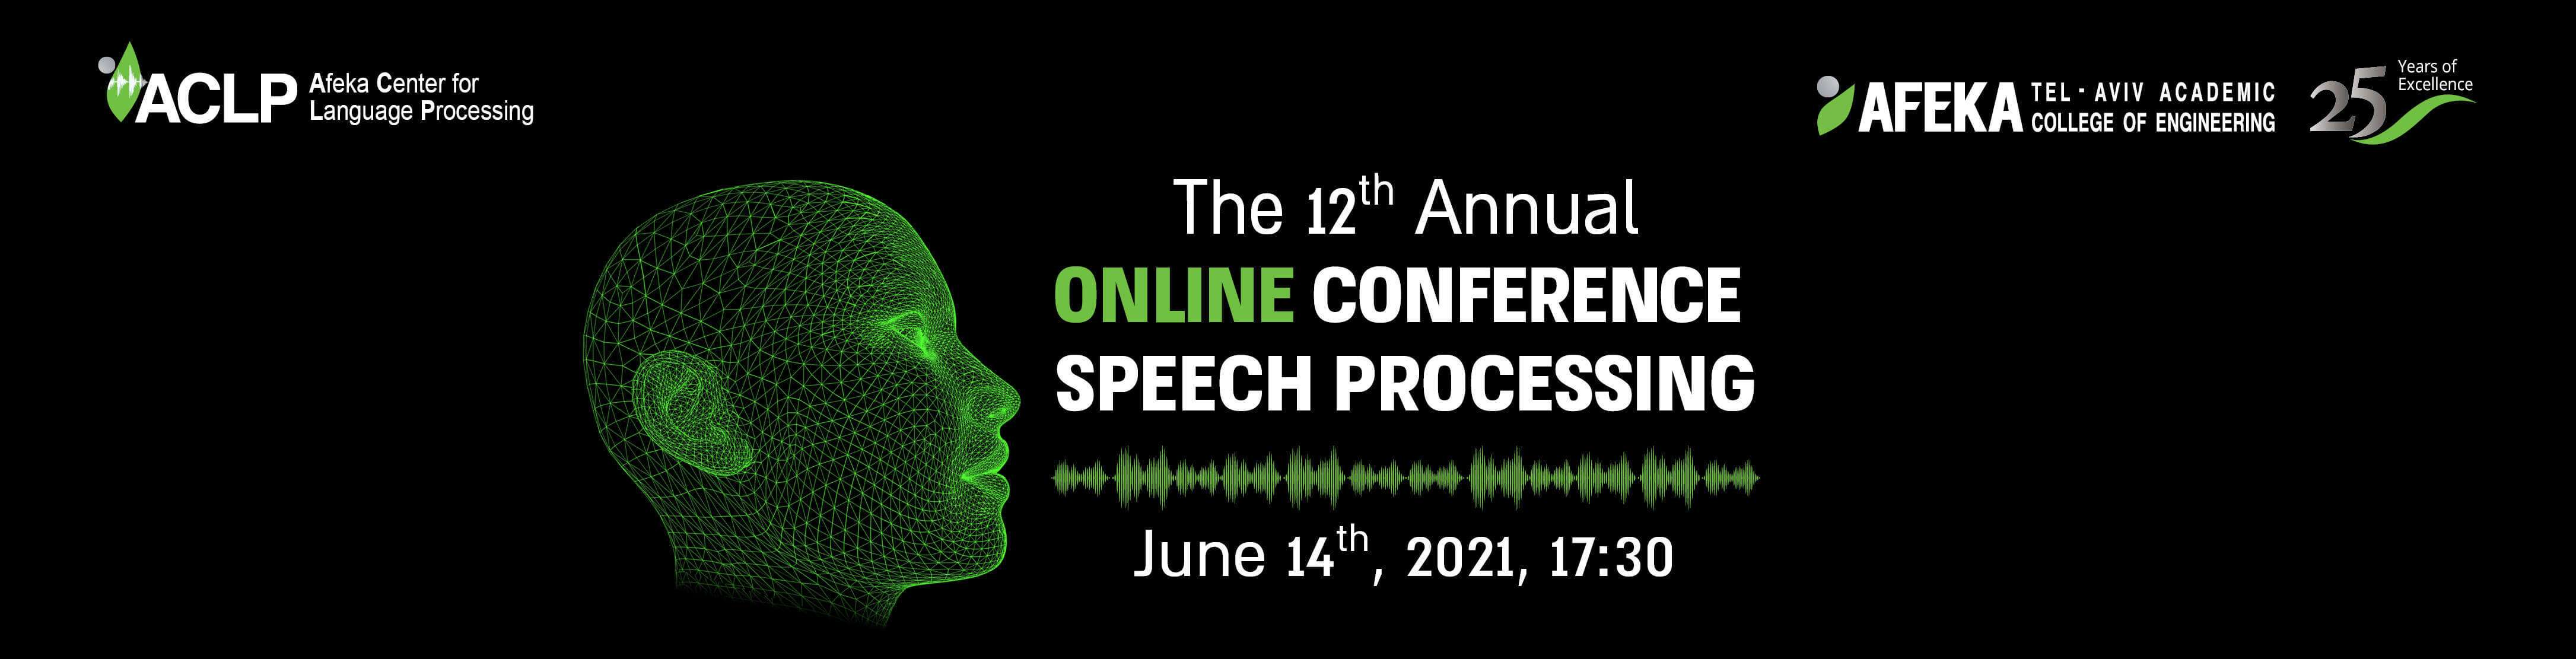 the 12th annual speech processing